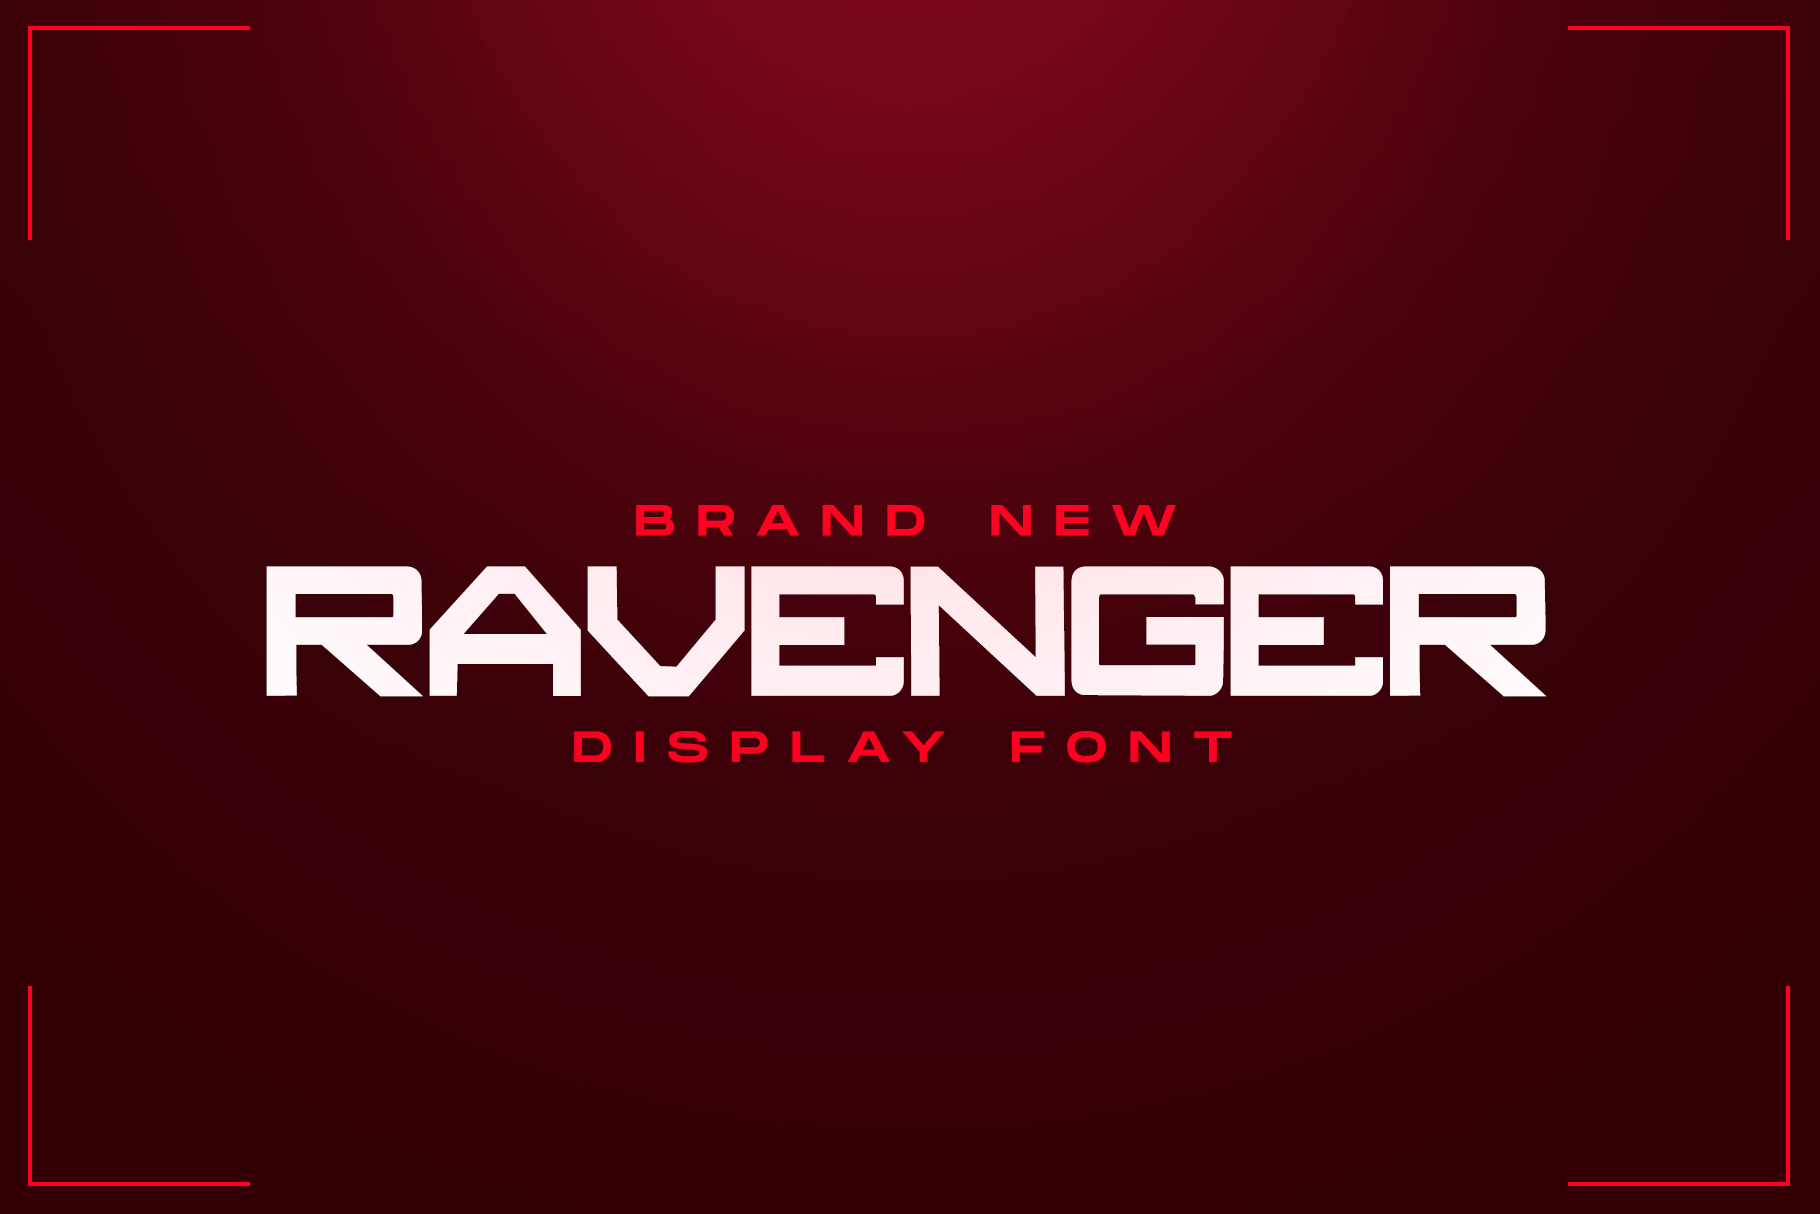 RAVENGER EXCLUSIVE DISPLAY FONT example image 1